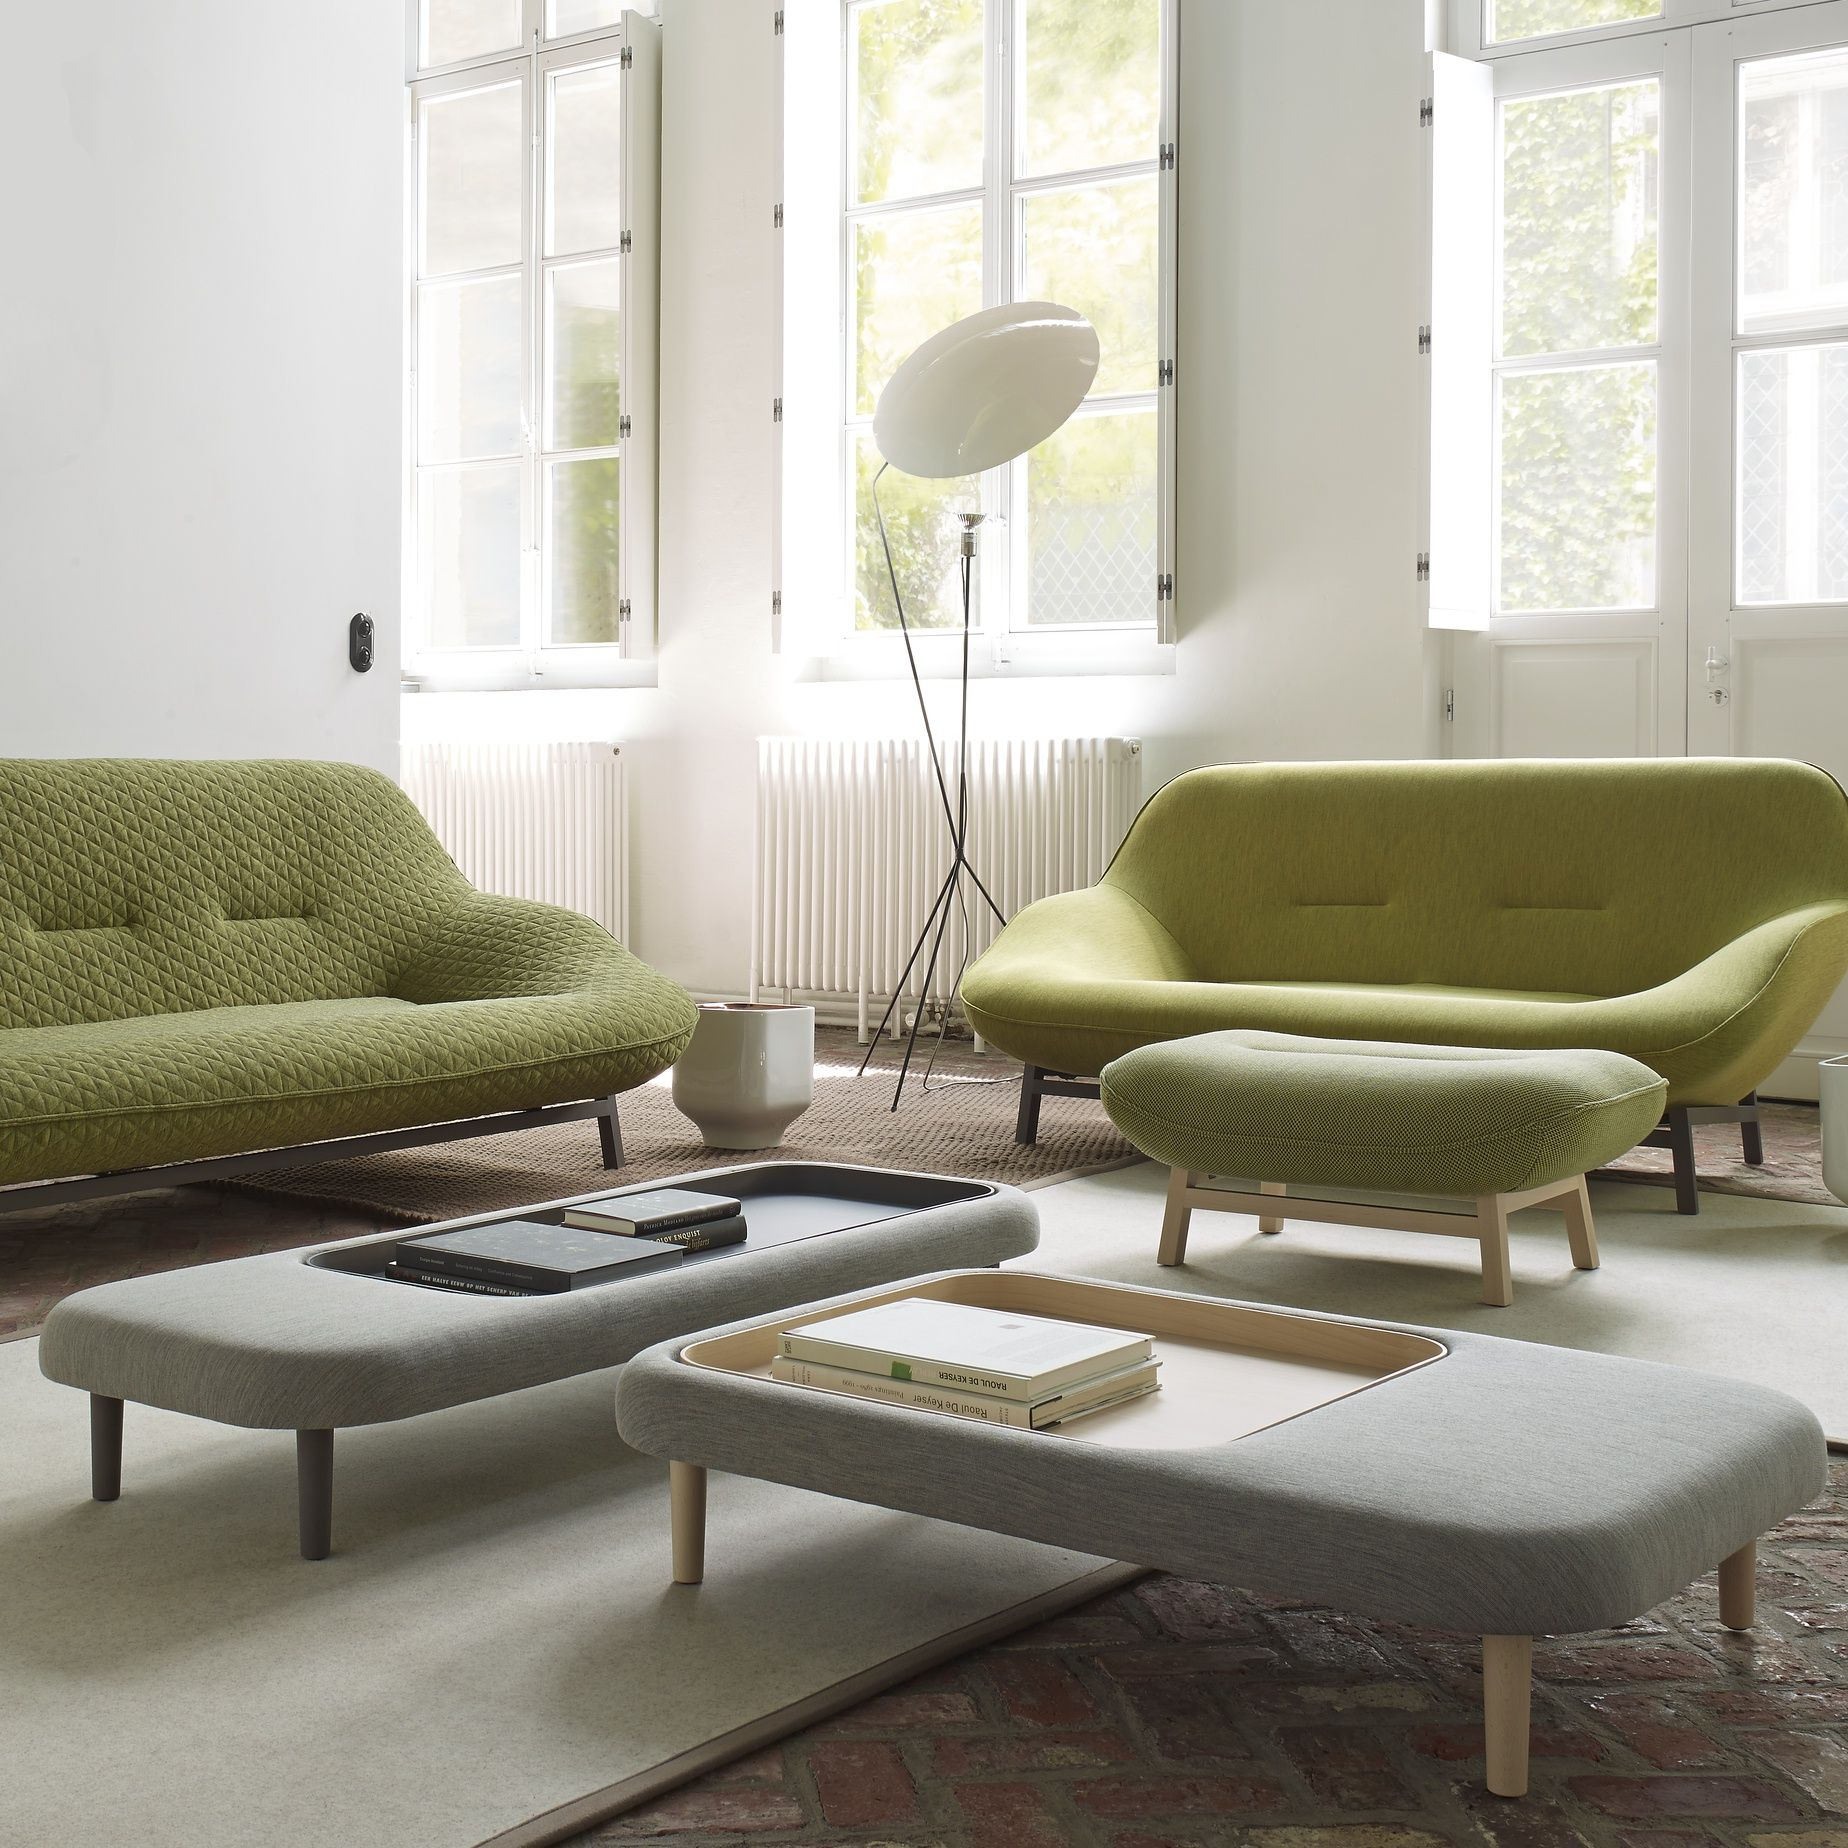 Fraga Table By Ligne Roset Living Room Upholstery Sofa Design Furniture Upholstery